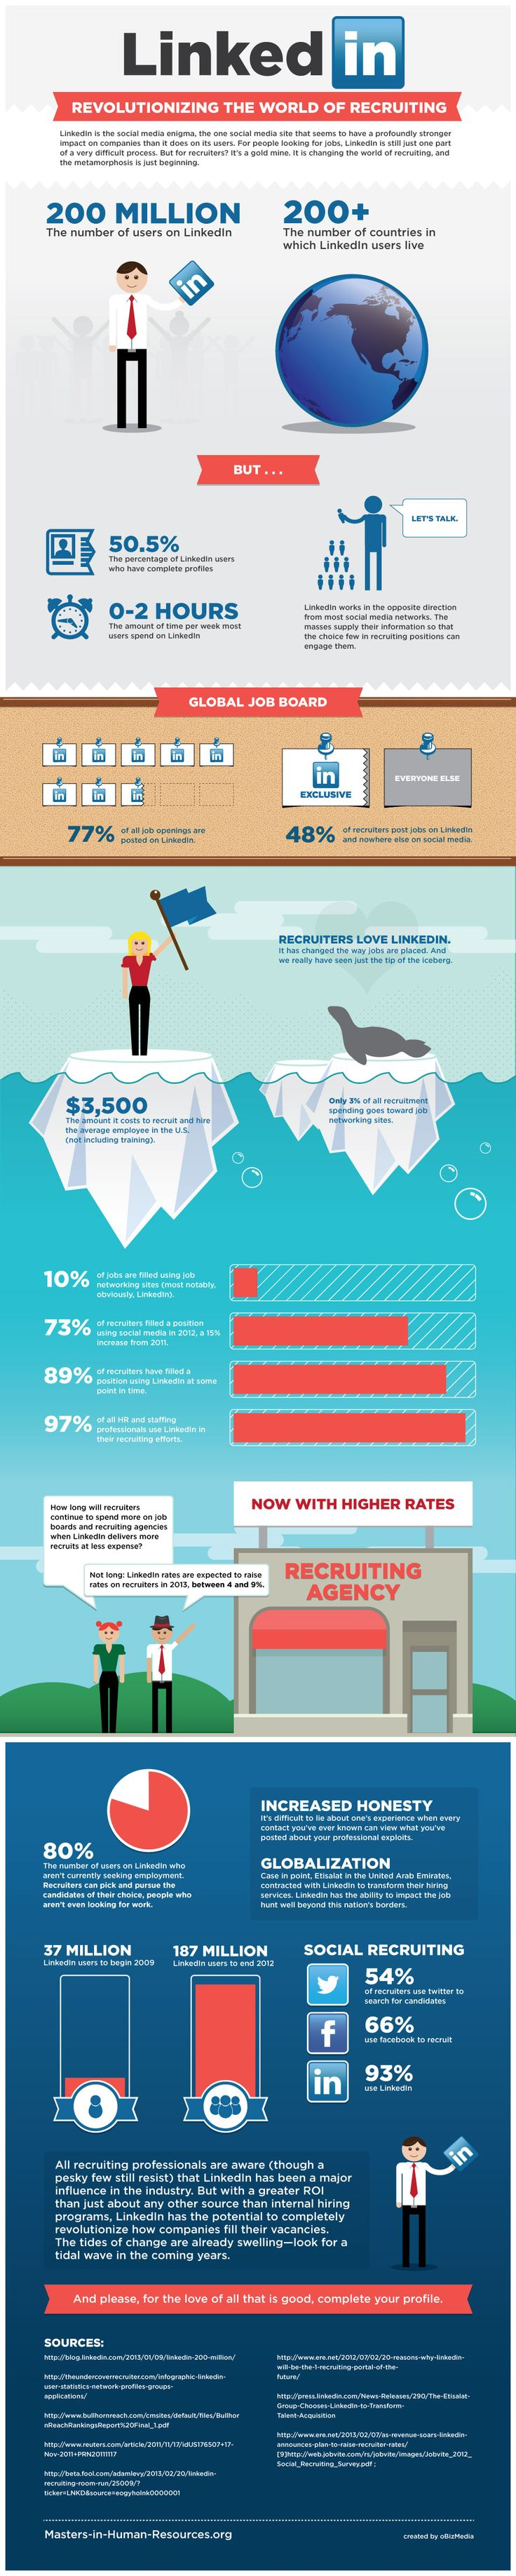 #LinkedIn revolutionizing the world of recruiting, #infographic by Masters in Human Resources